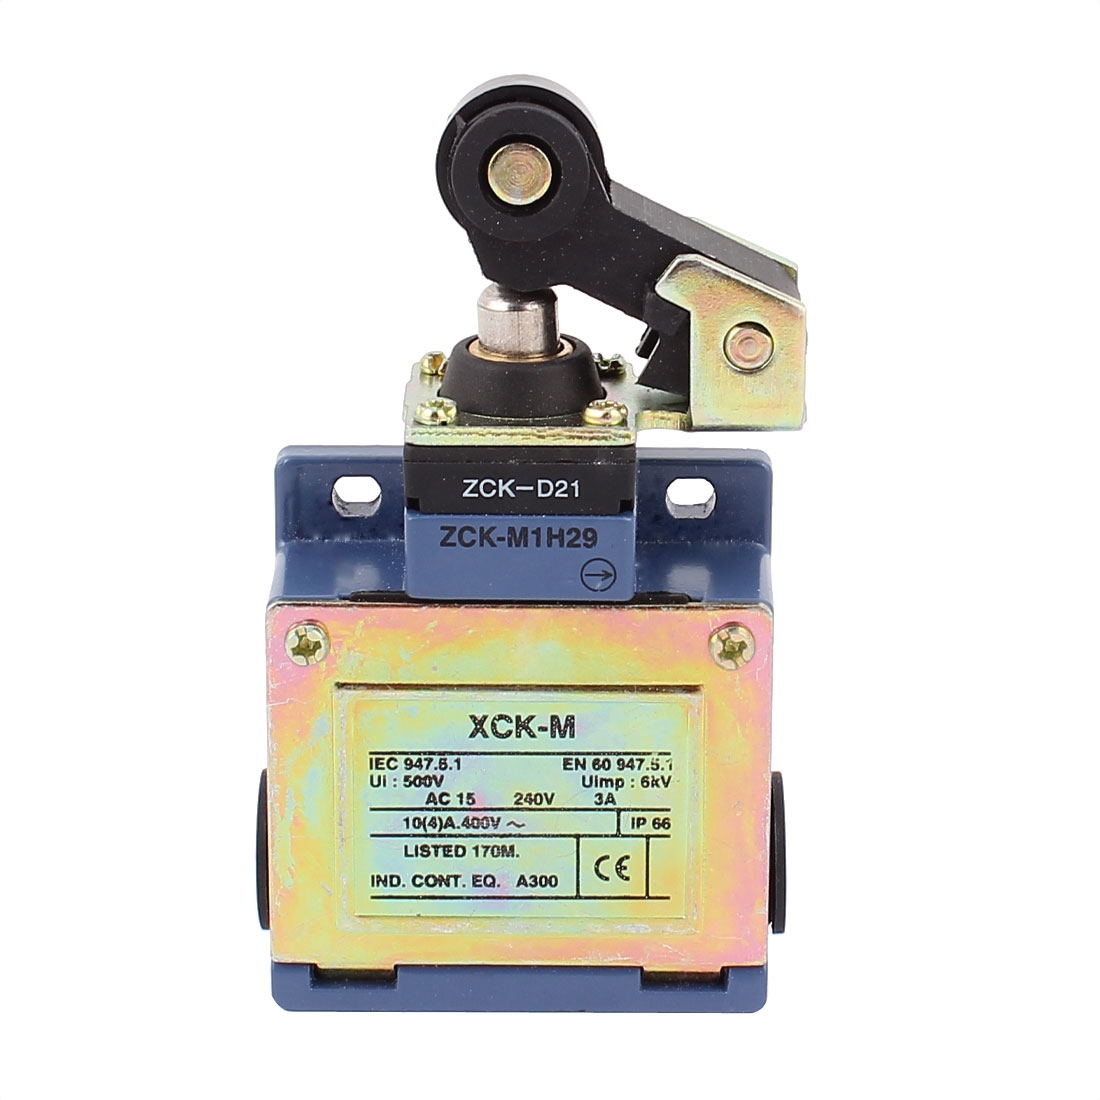 XCK-M AC15 240V 3A Roller Lever Actuator Limit Switch